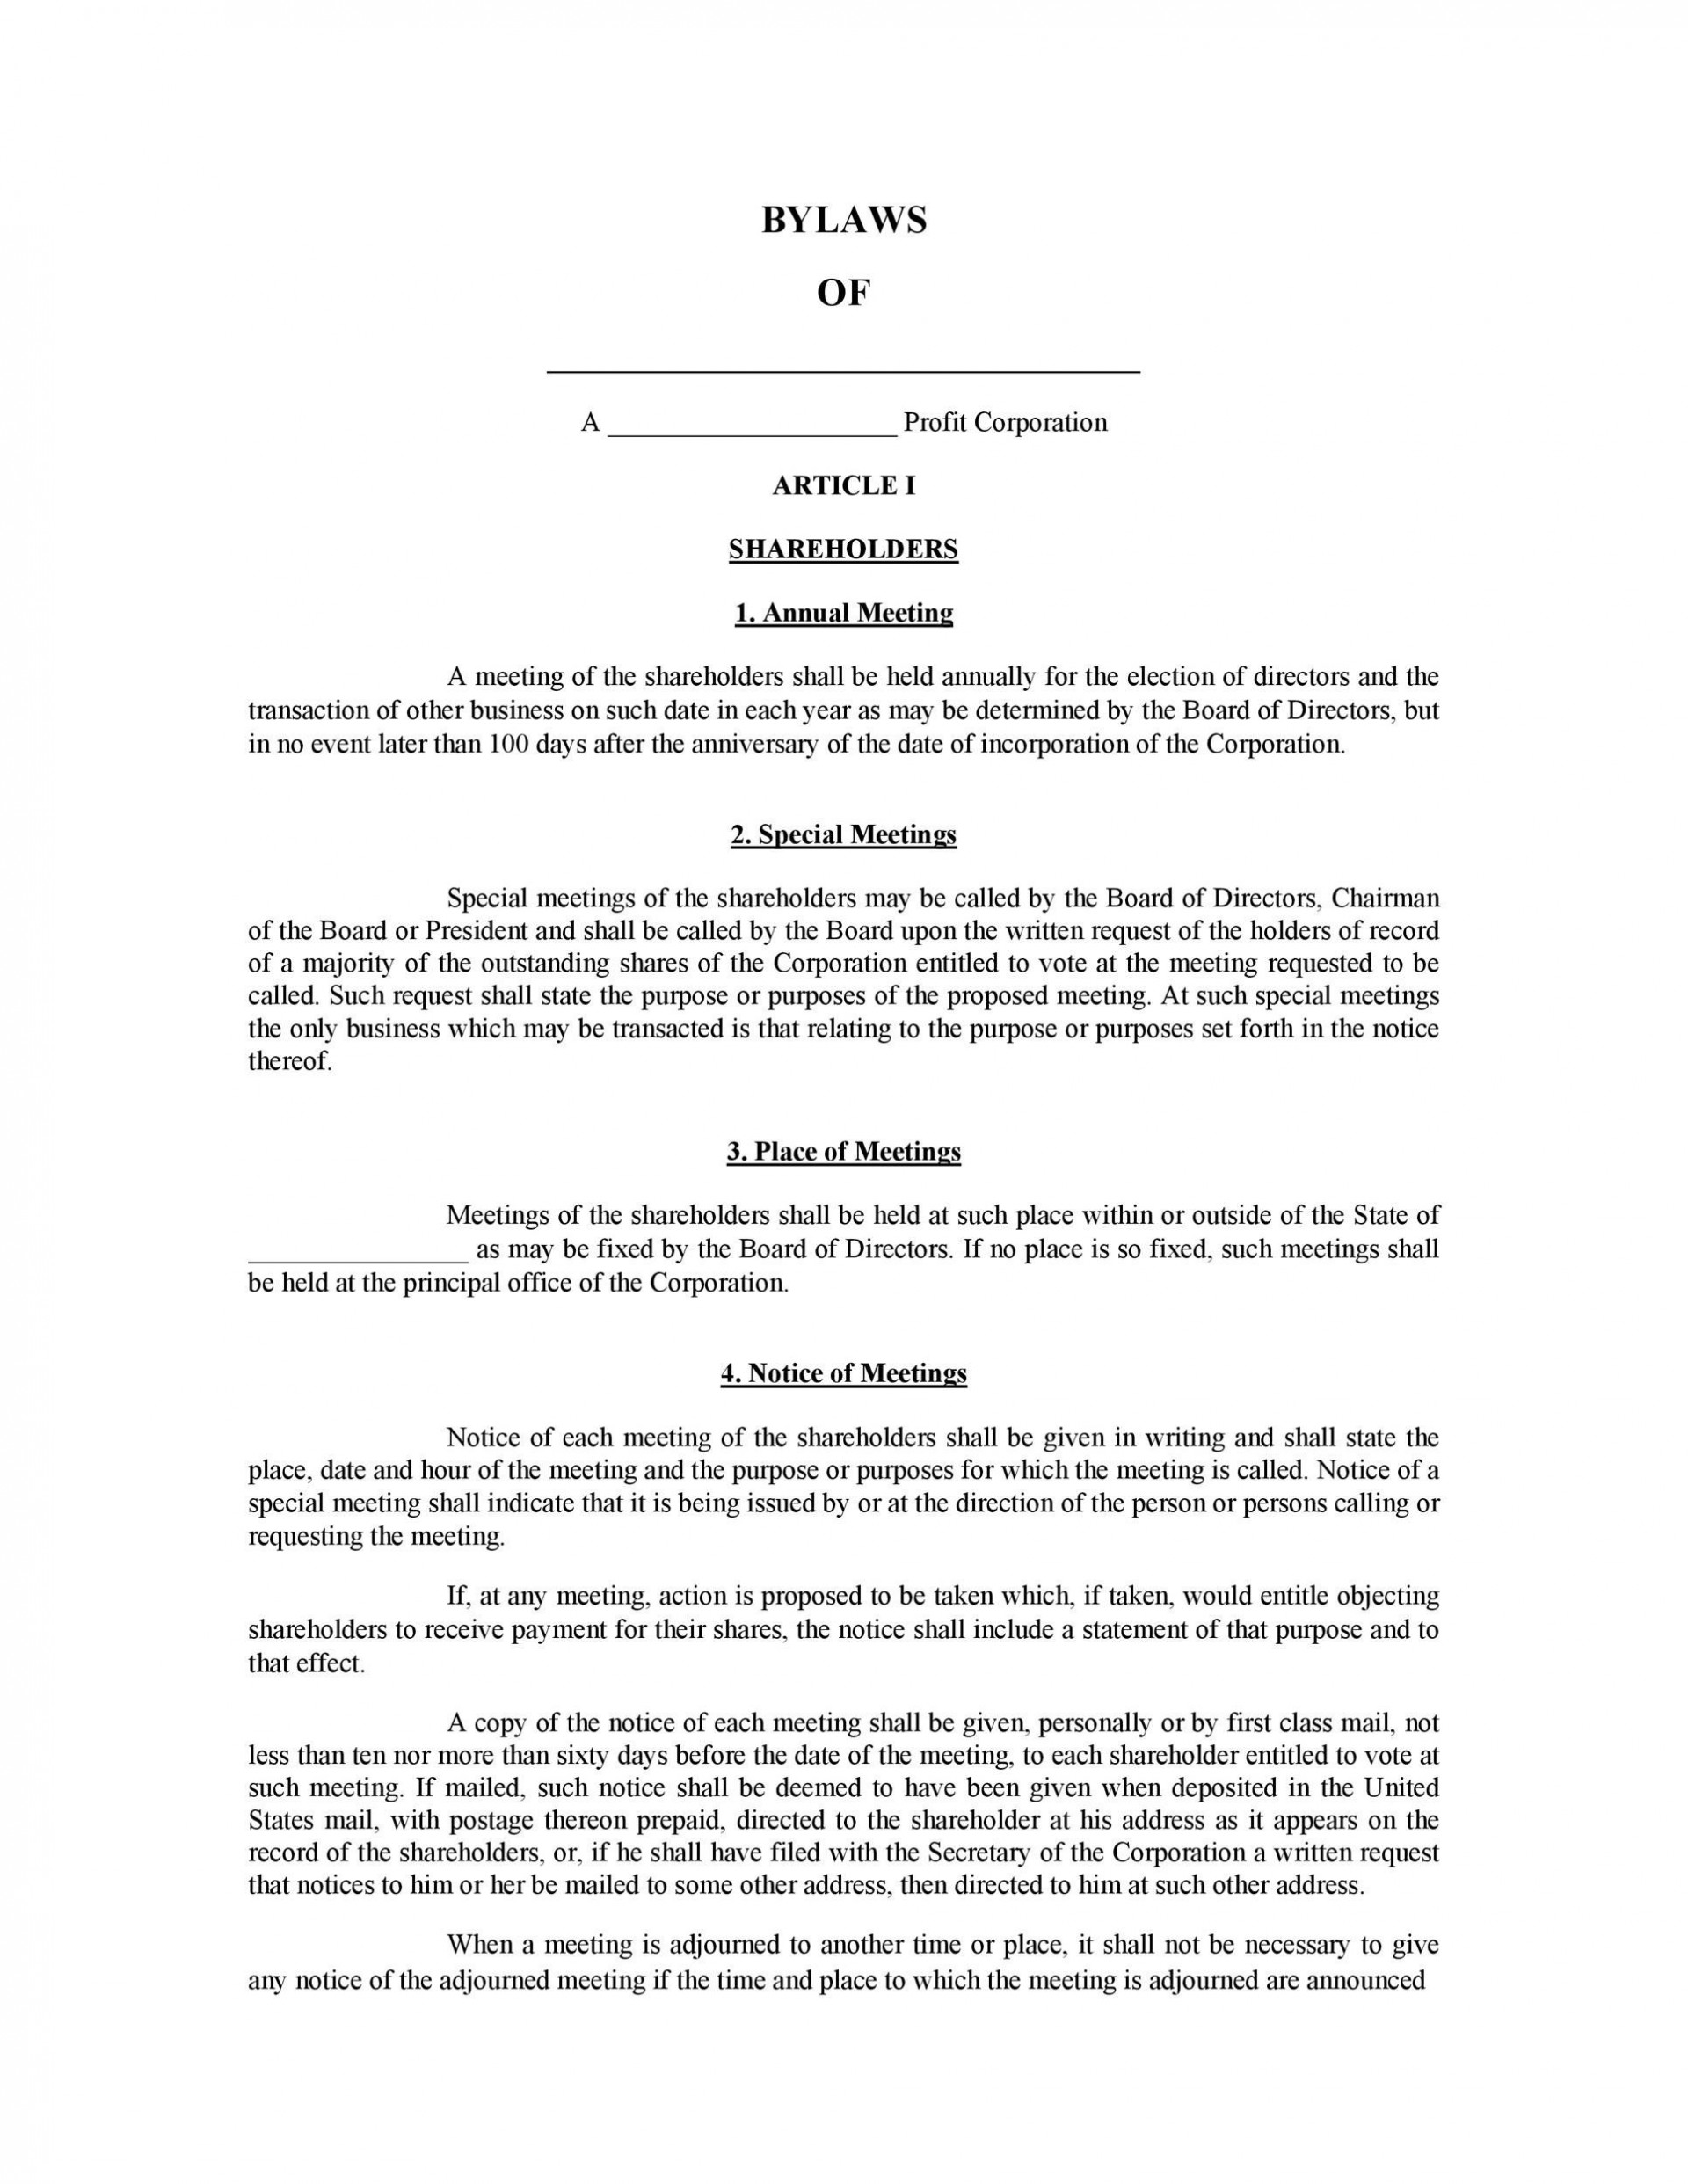 005 Beautiful Corporate Bylaw Template Pdf Example  Sample1920